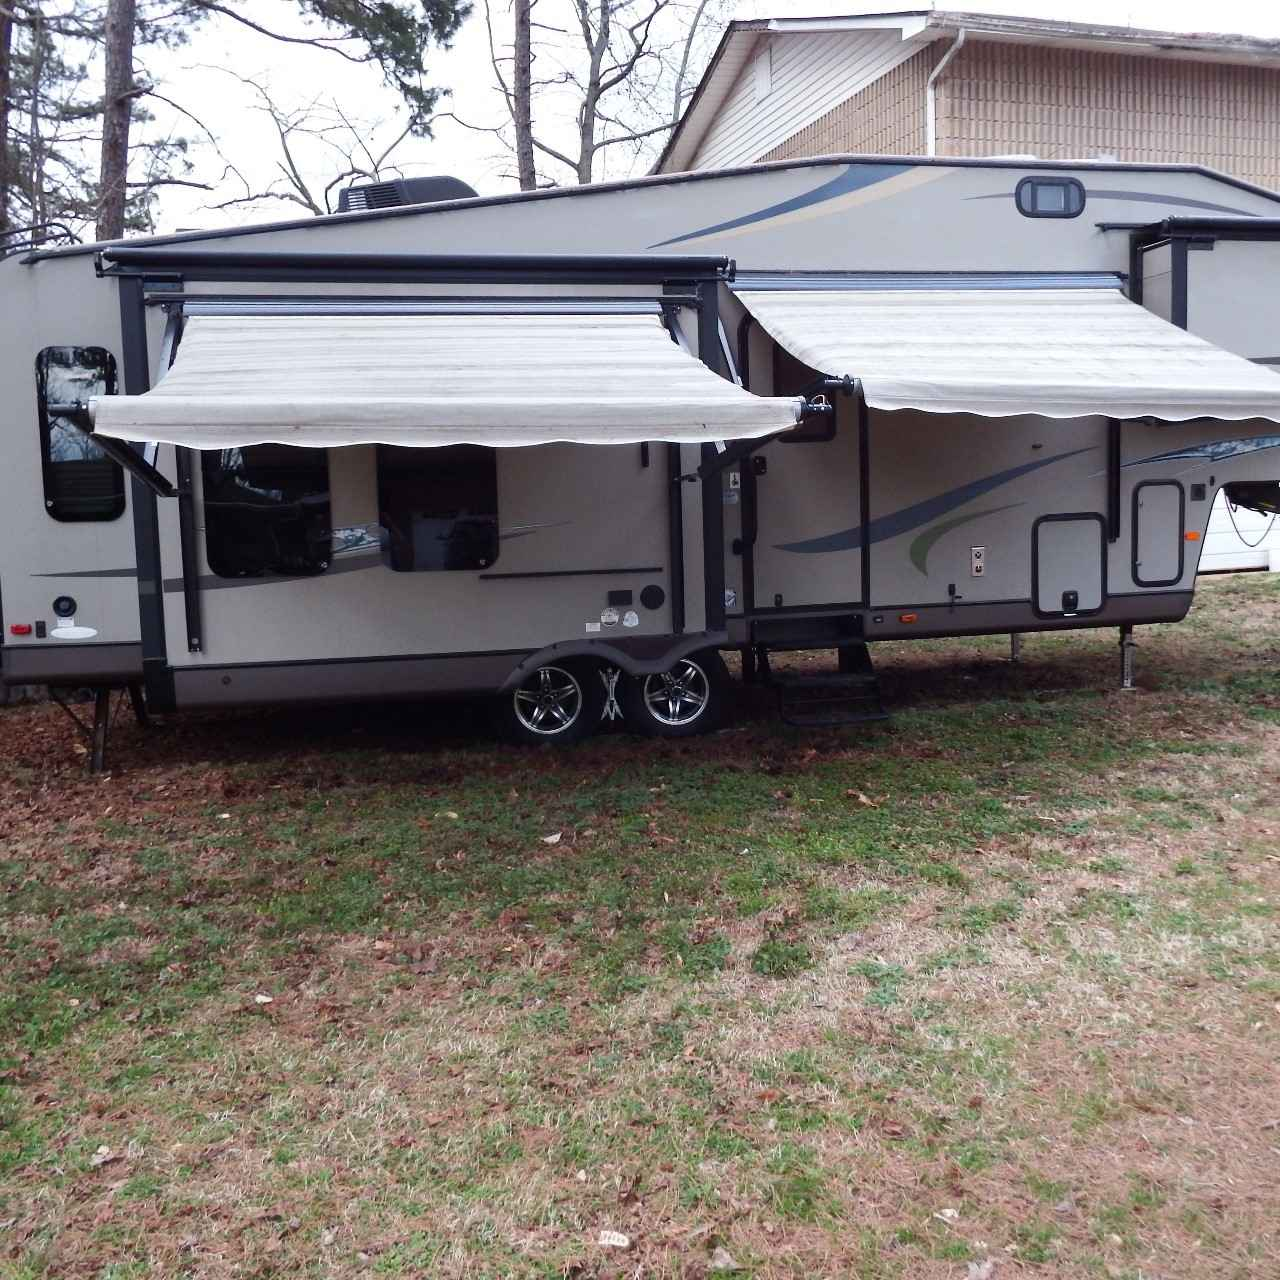 2013 Used Flagstaff Classic Super Lite 8528ikws Fifth